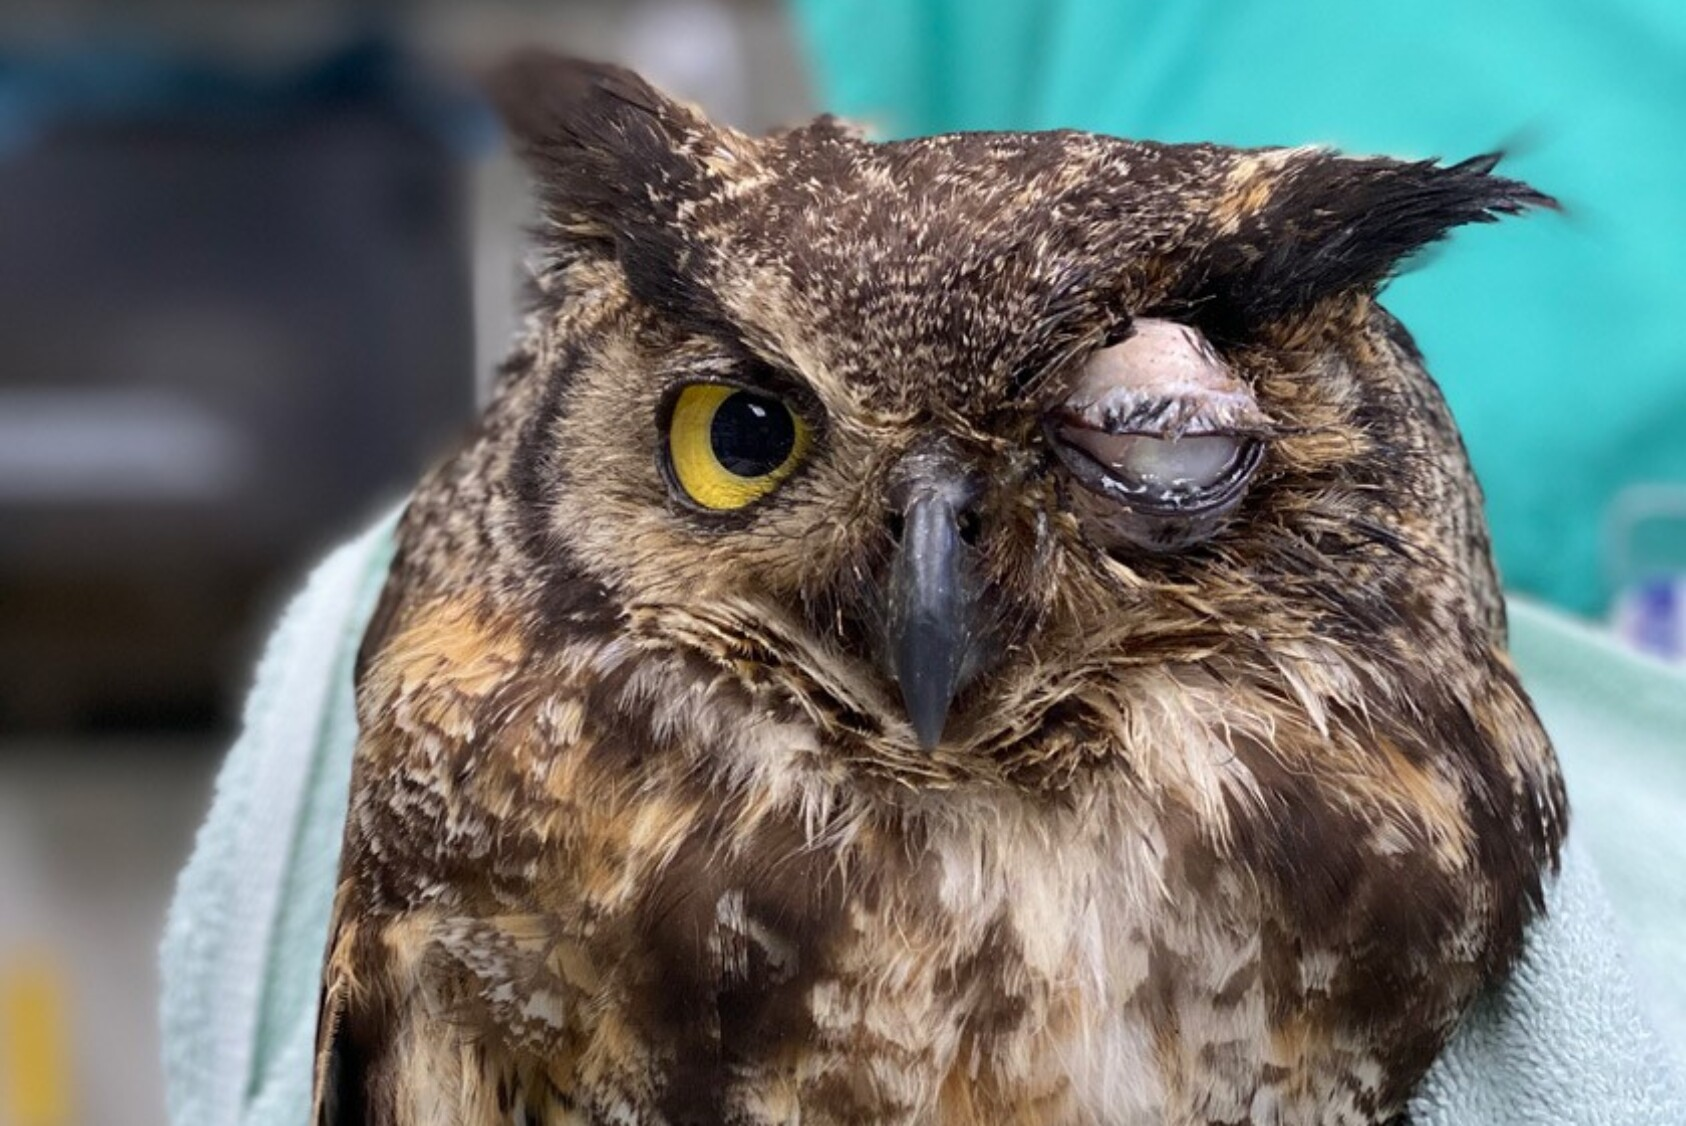 A great horned owl with a severe infection of the left eye.